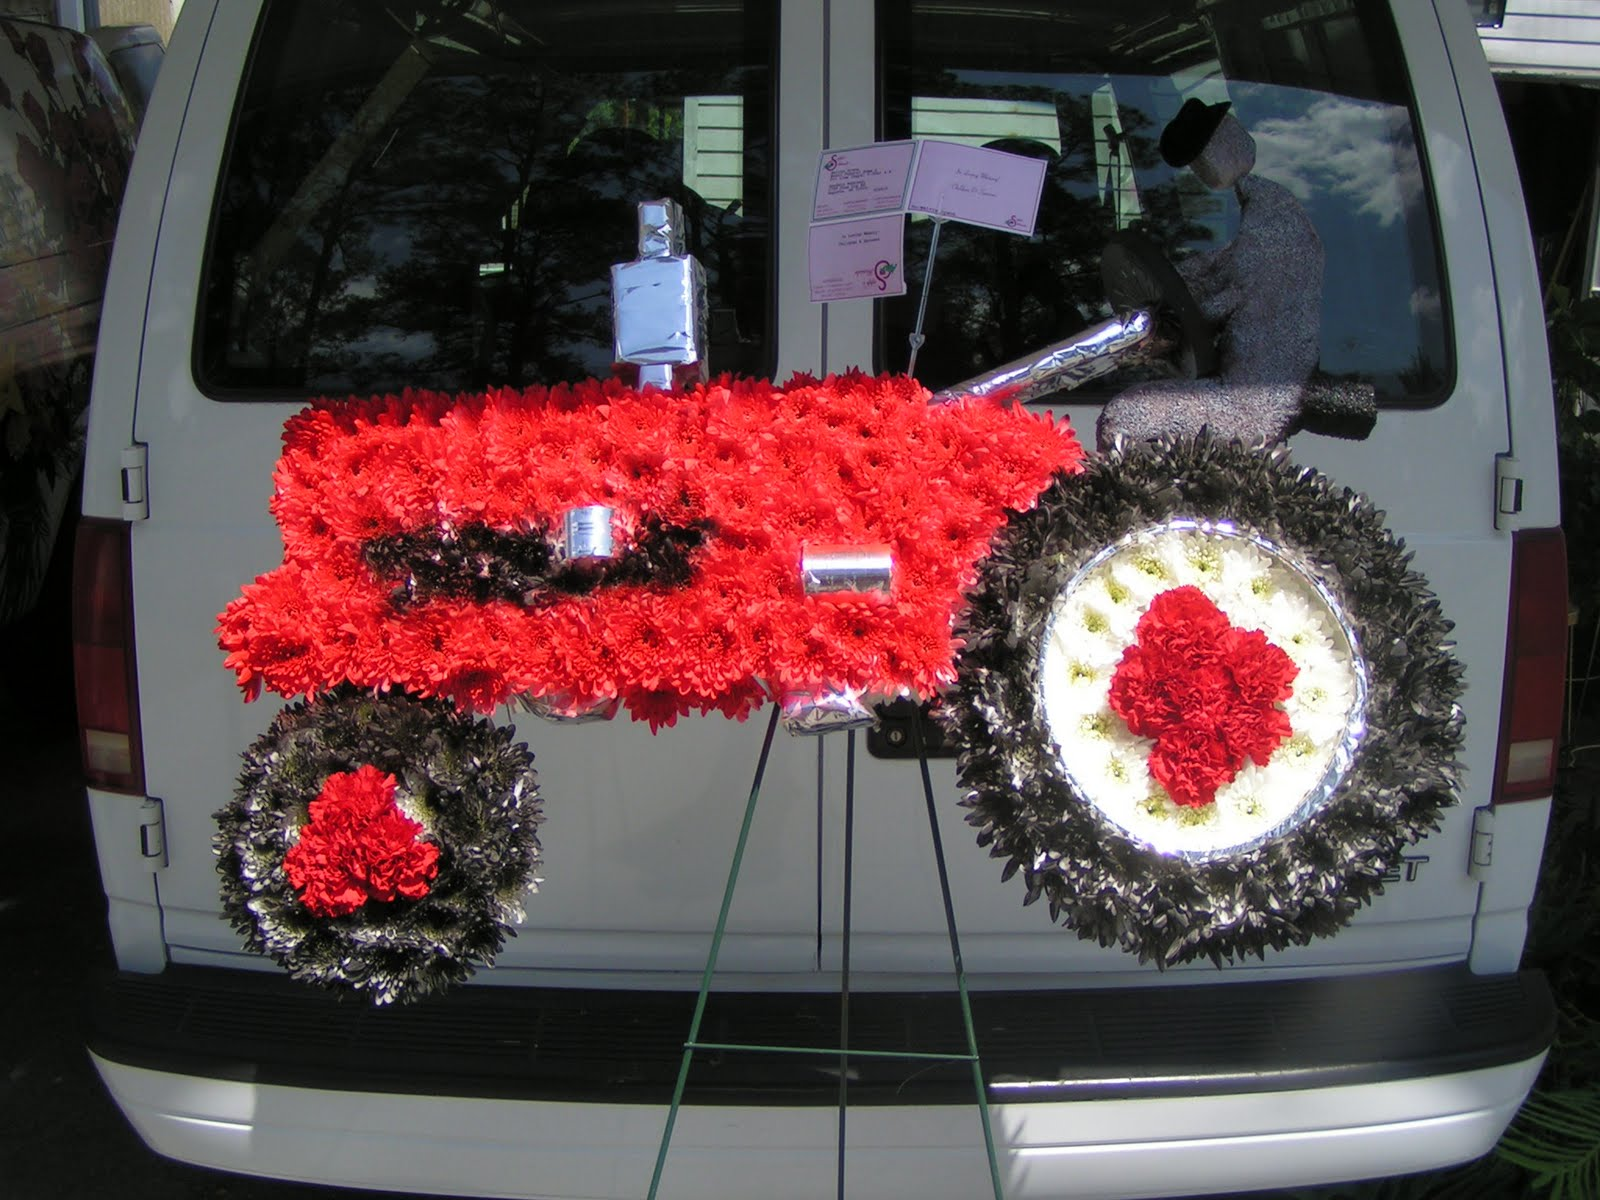 Sapps Florist Most Unique Designs Of The Day Red Tractor Made Of